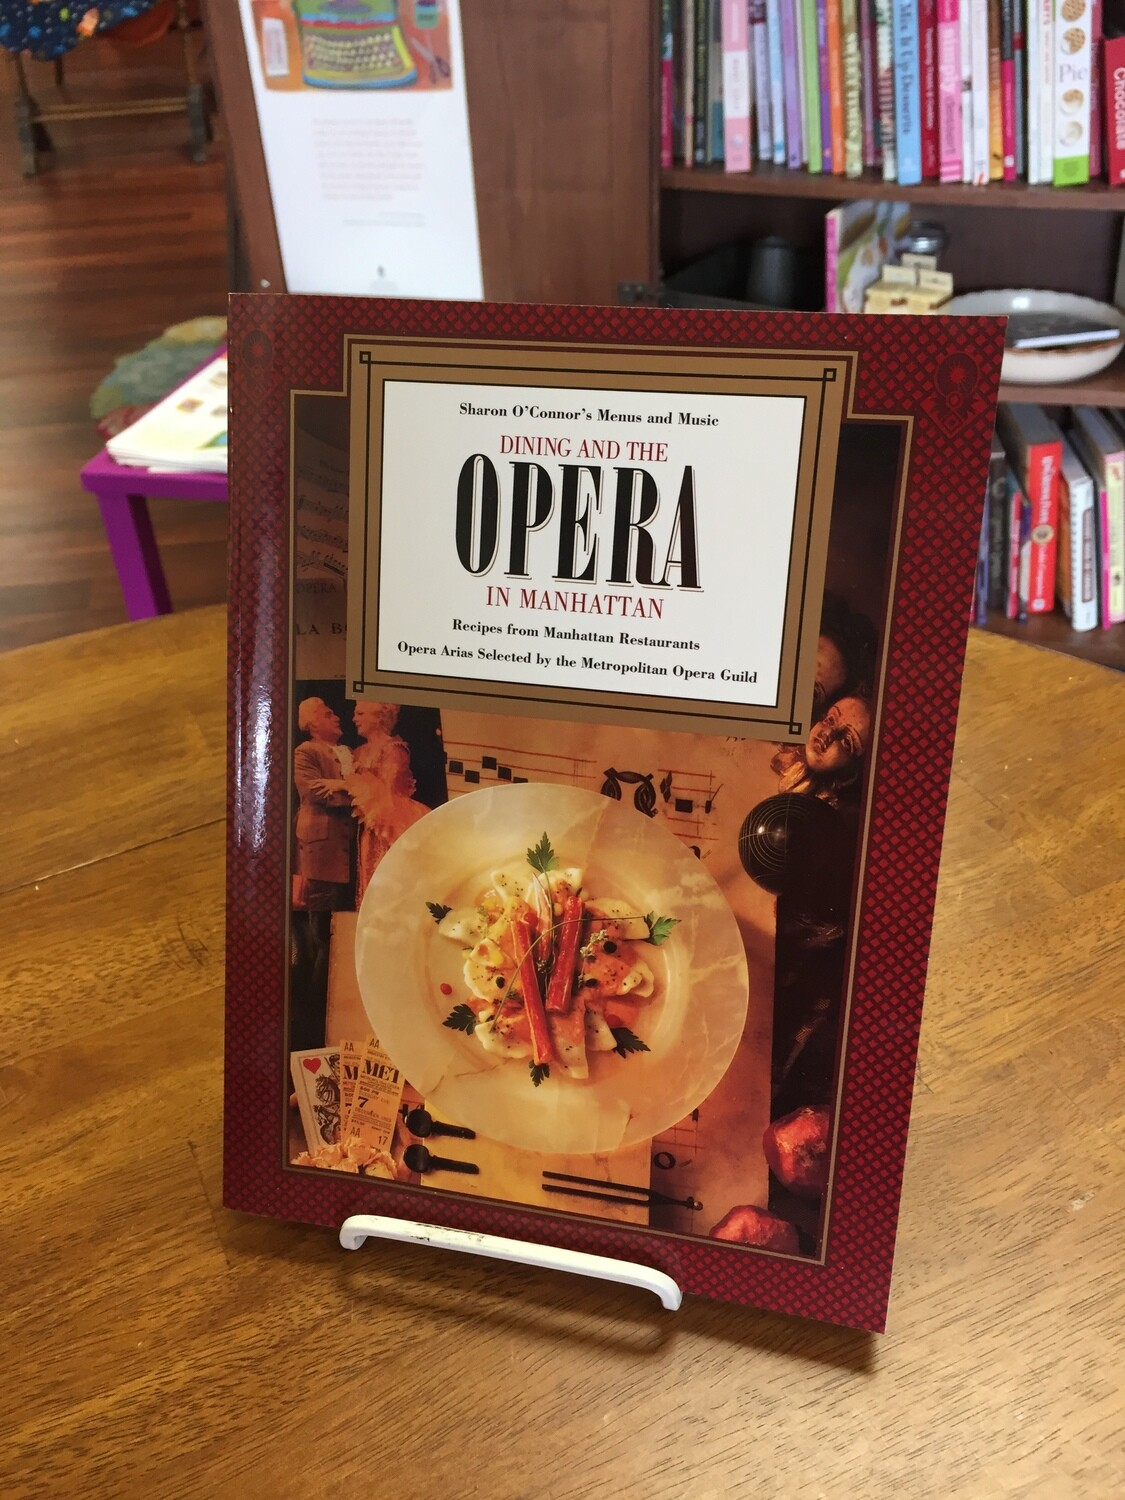 Dining and the OPERA in Manhattan